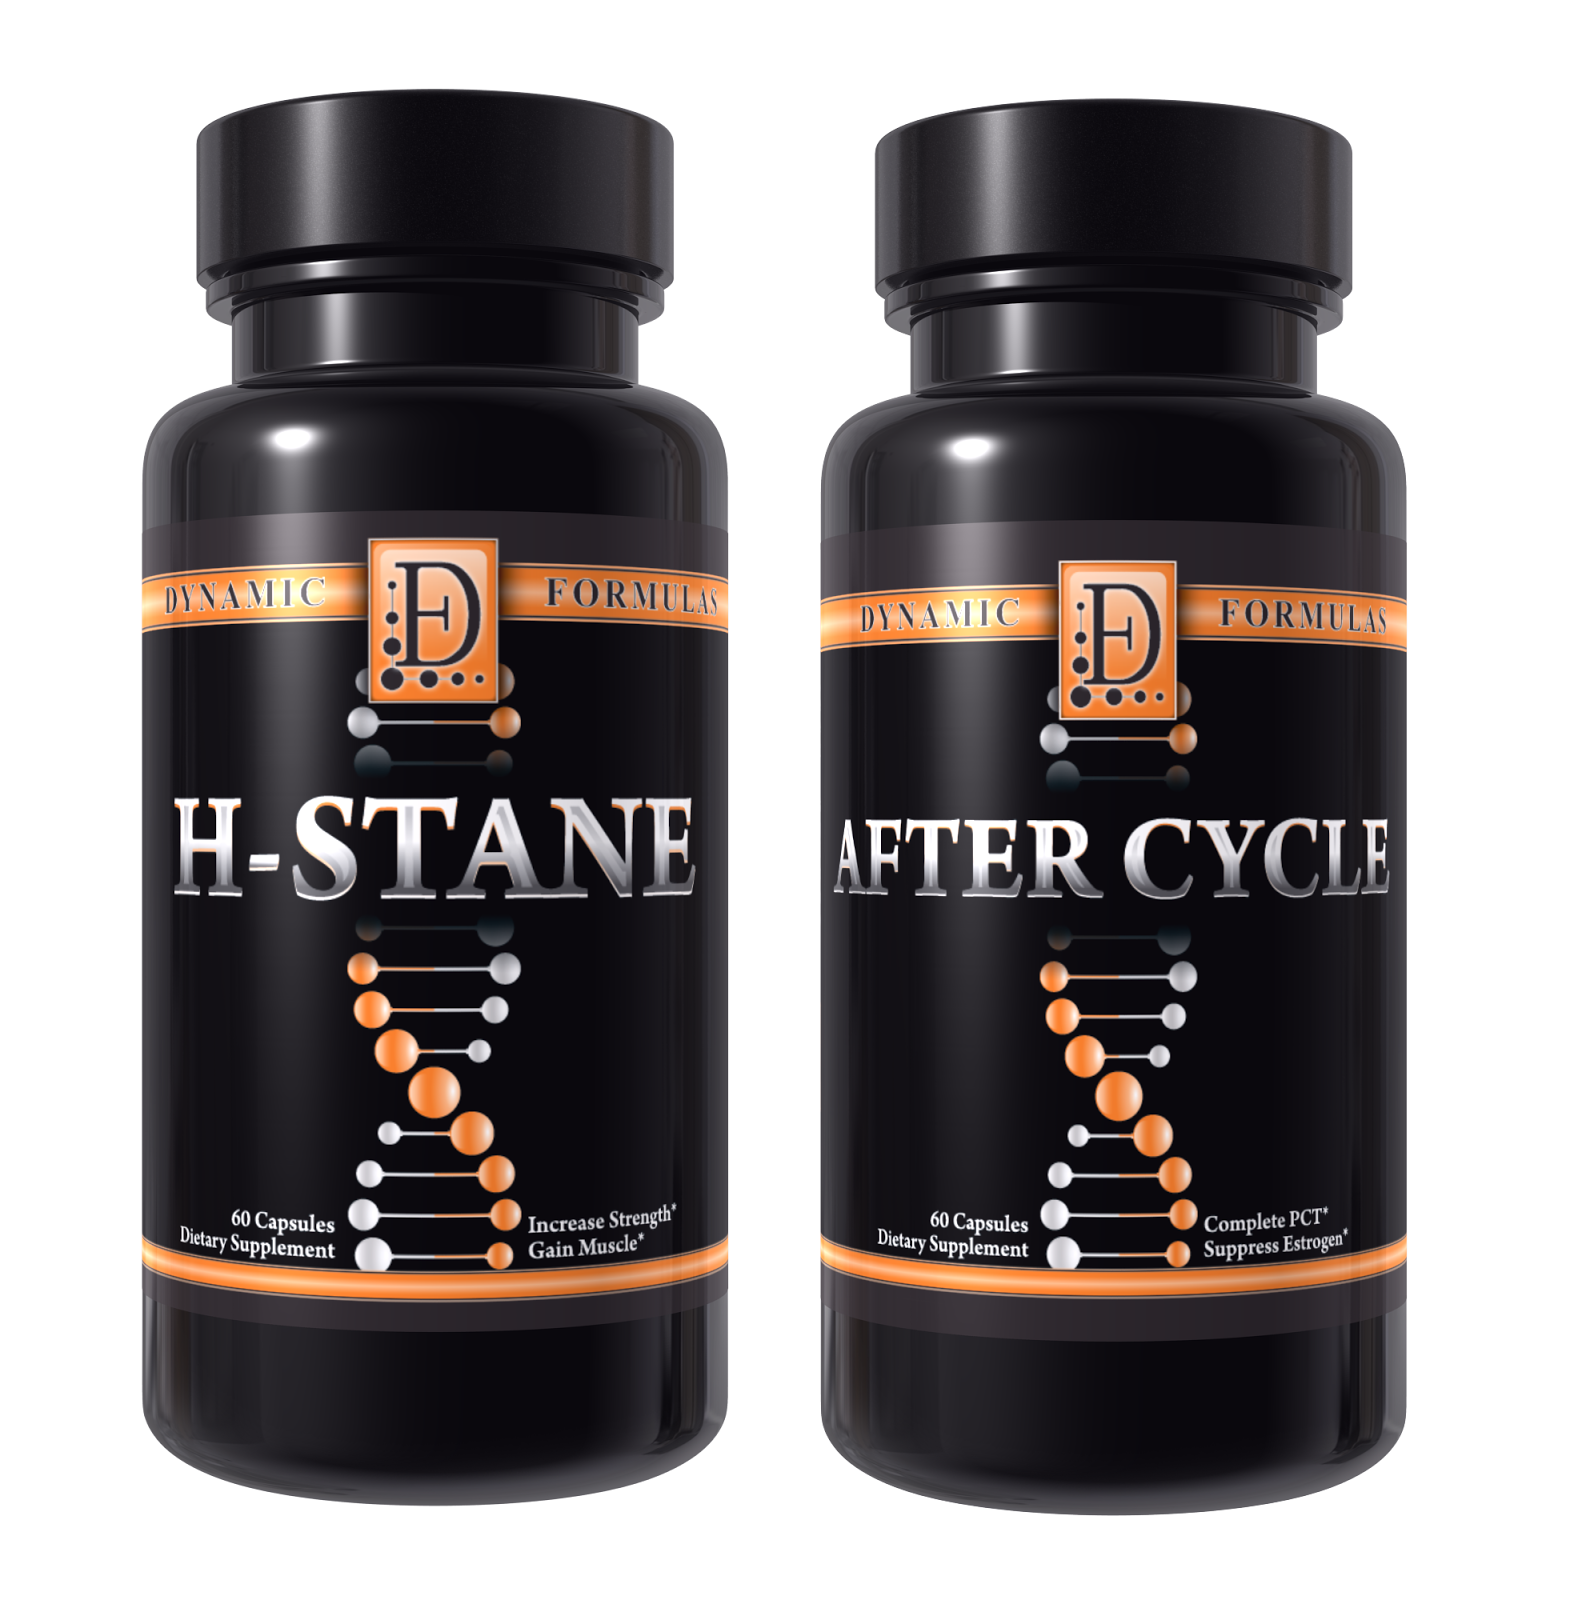 http://www.supplementedge.com/dynamic-formulas-h-stane-and-after-cycle-pct.html